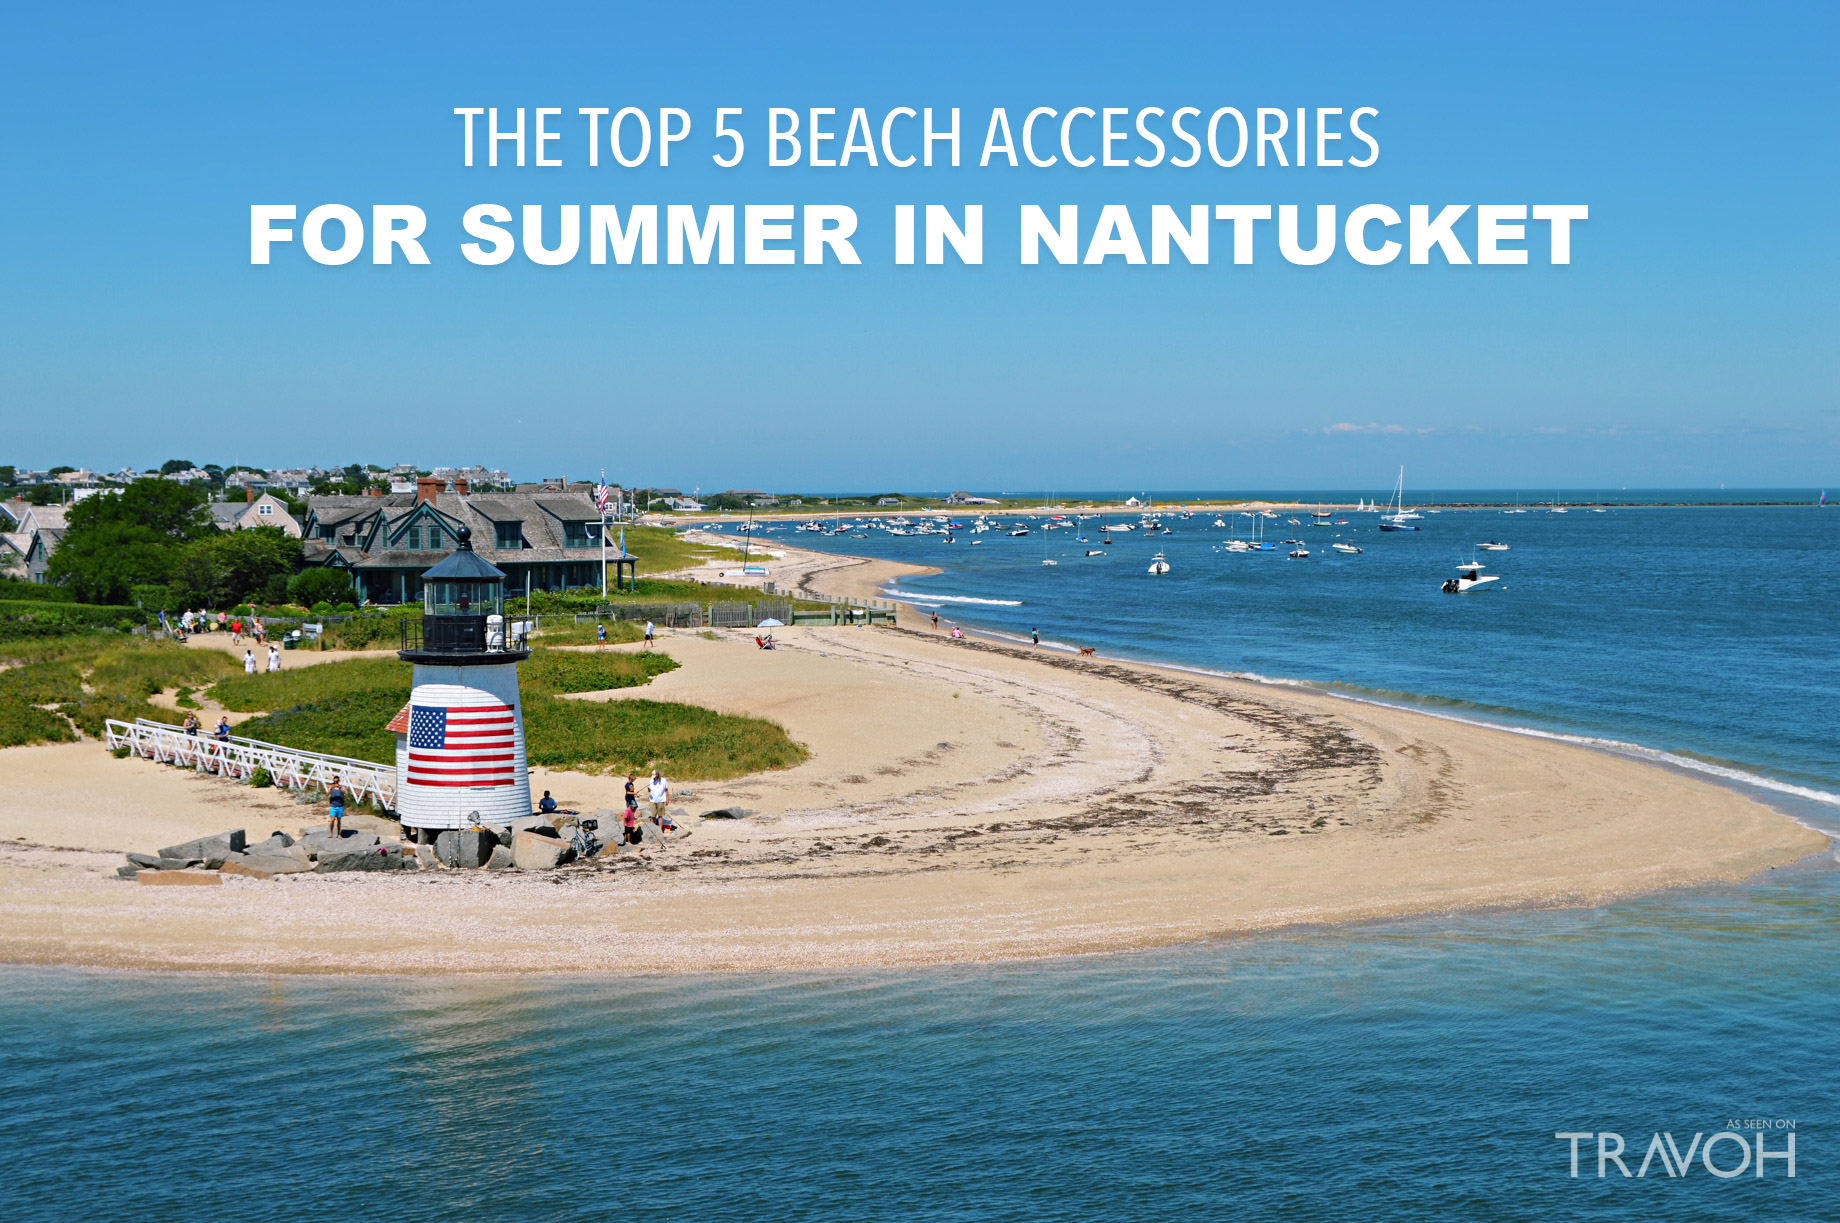 The Top 5 Beach Accessories For Summer in Nantucket